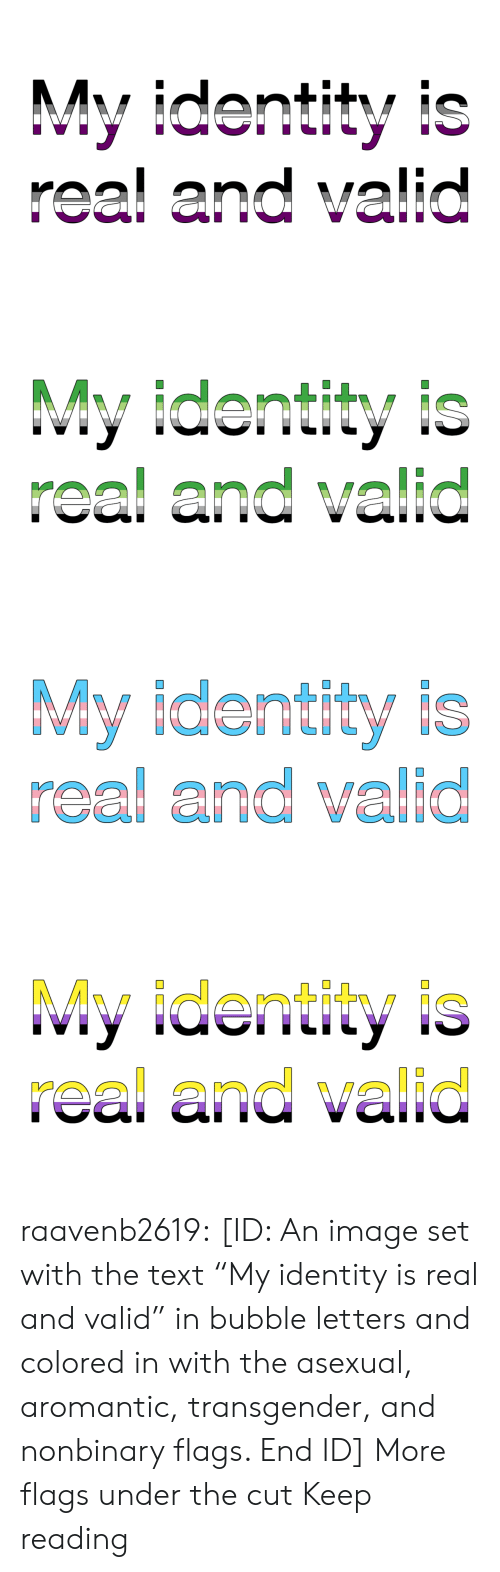 "Asexual: My identity is  real and valid   My identity is  real and valid   My identity is  real and valid   My identity is  real and valid raavenb2619:  [ID: An image set with the text ""My identity is real and valid"" in bubble letters and colored in with the asexual, aromantic, transgender, and nonbinary flags. End ID]  More flags under the cut  Keep reading"